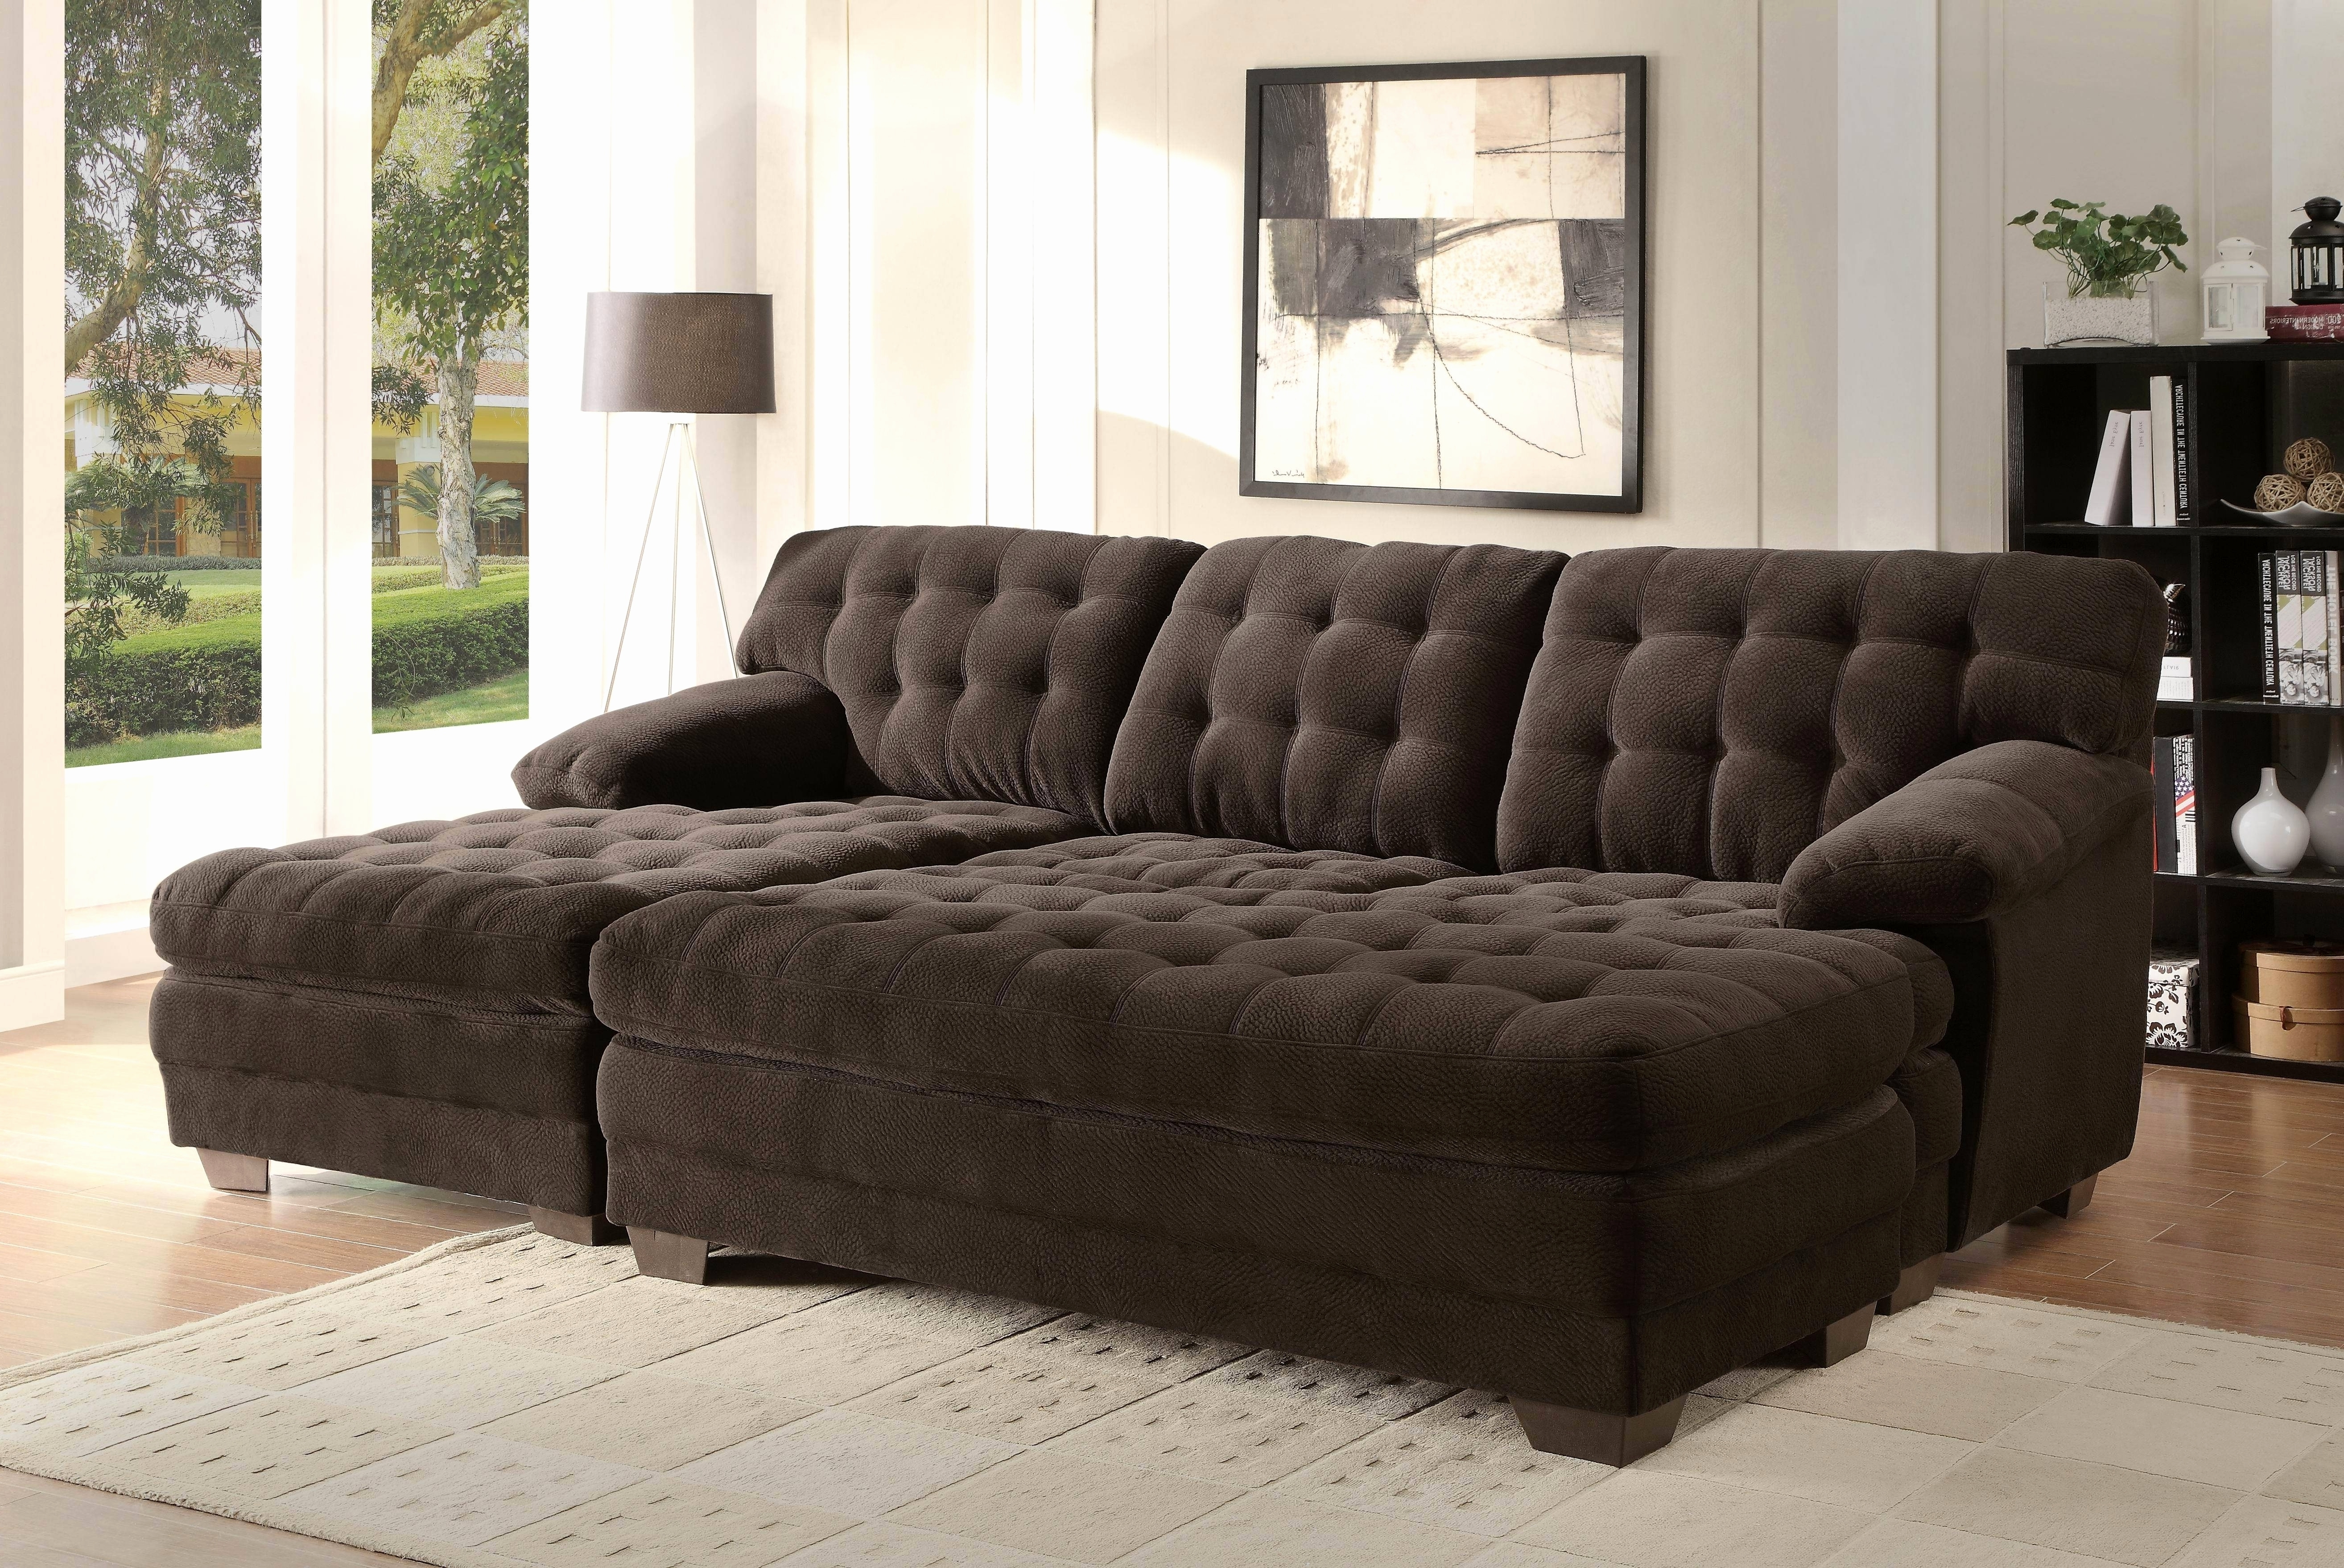 Fresh Sectional Sofa With Extra Wide Chaise 2018 – Couches Ideas Inside Best And Newest Wide Seat Sectional Sofas (View 10 of 15)